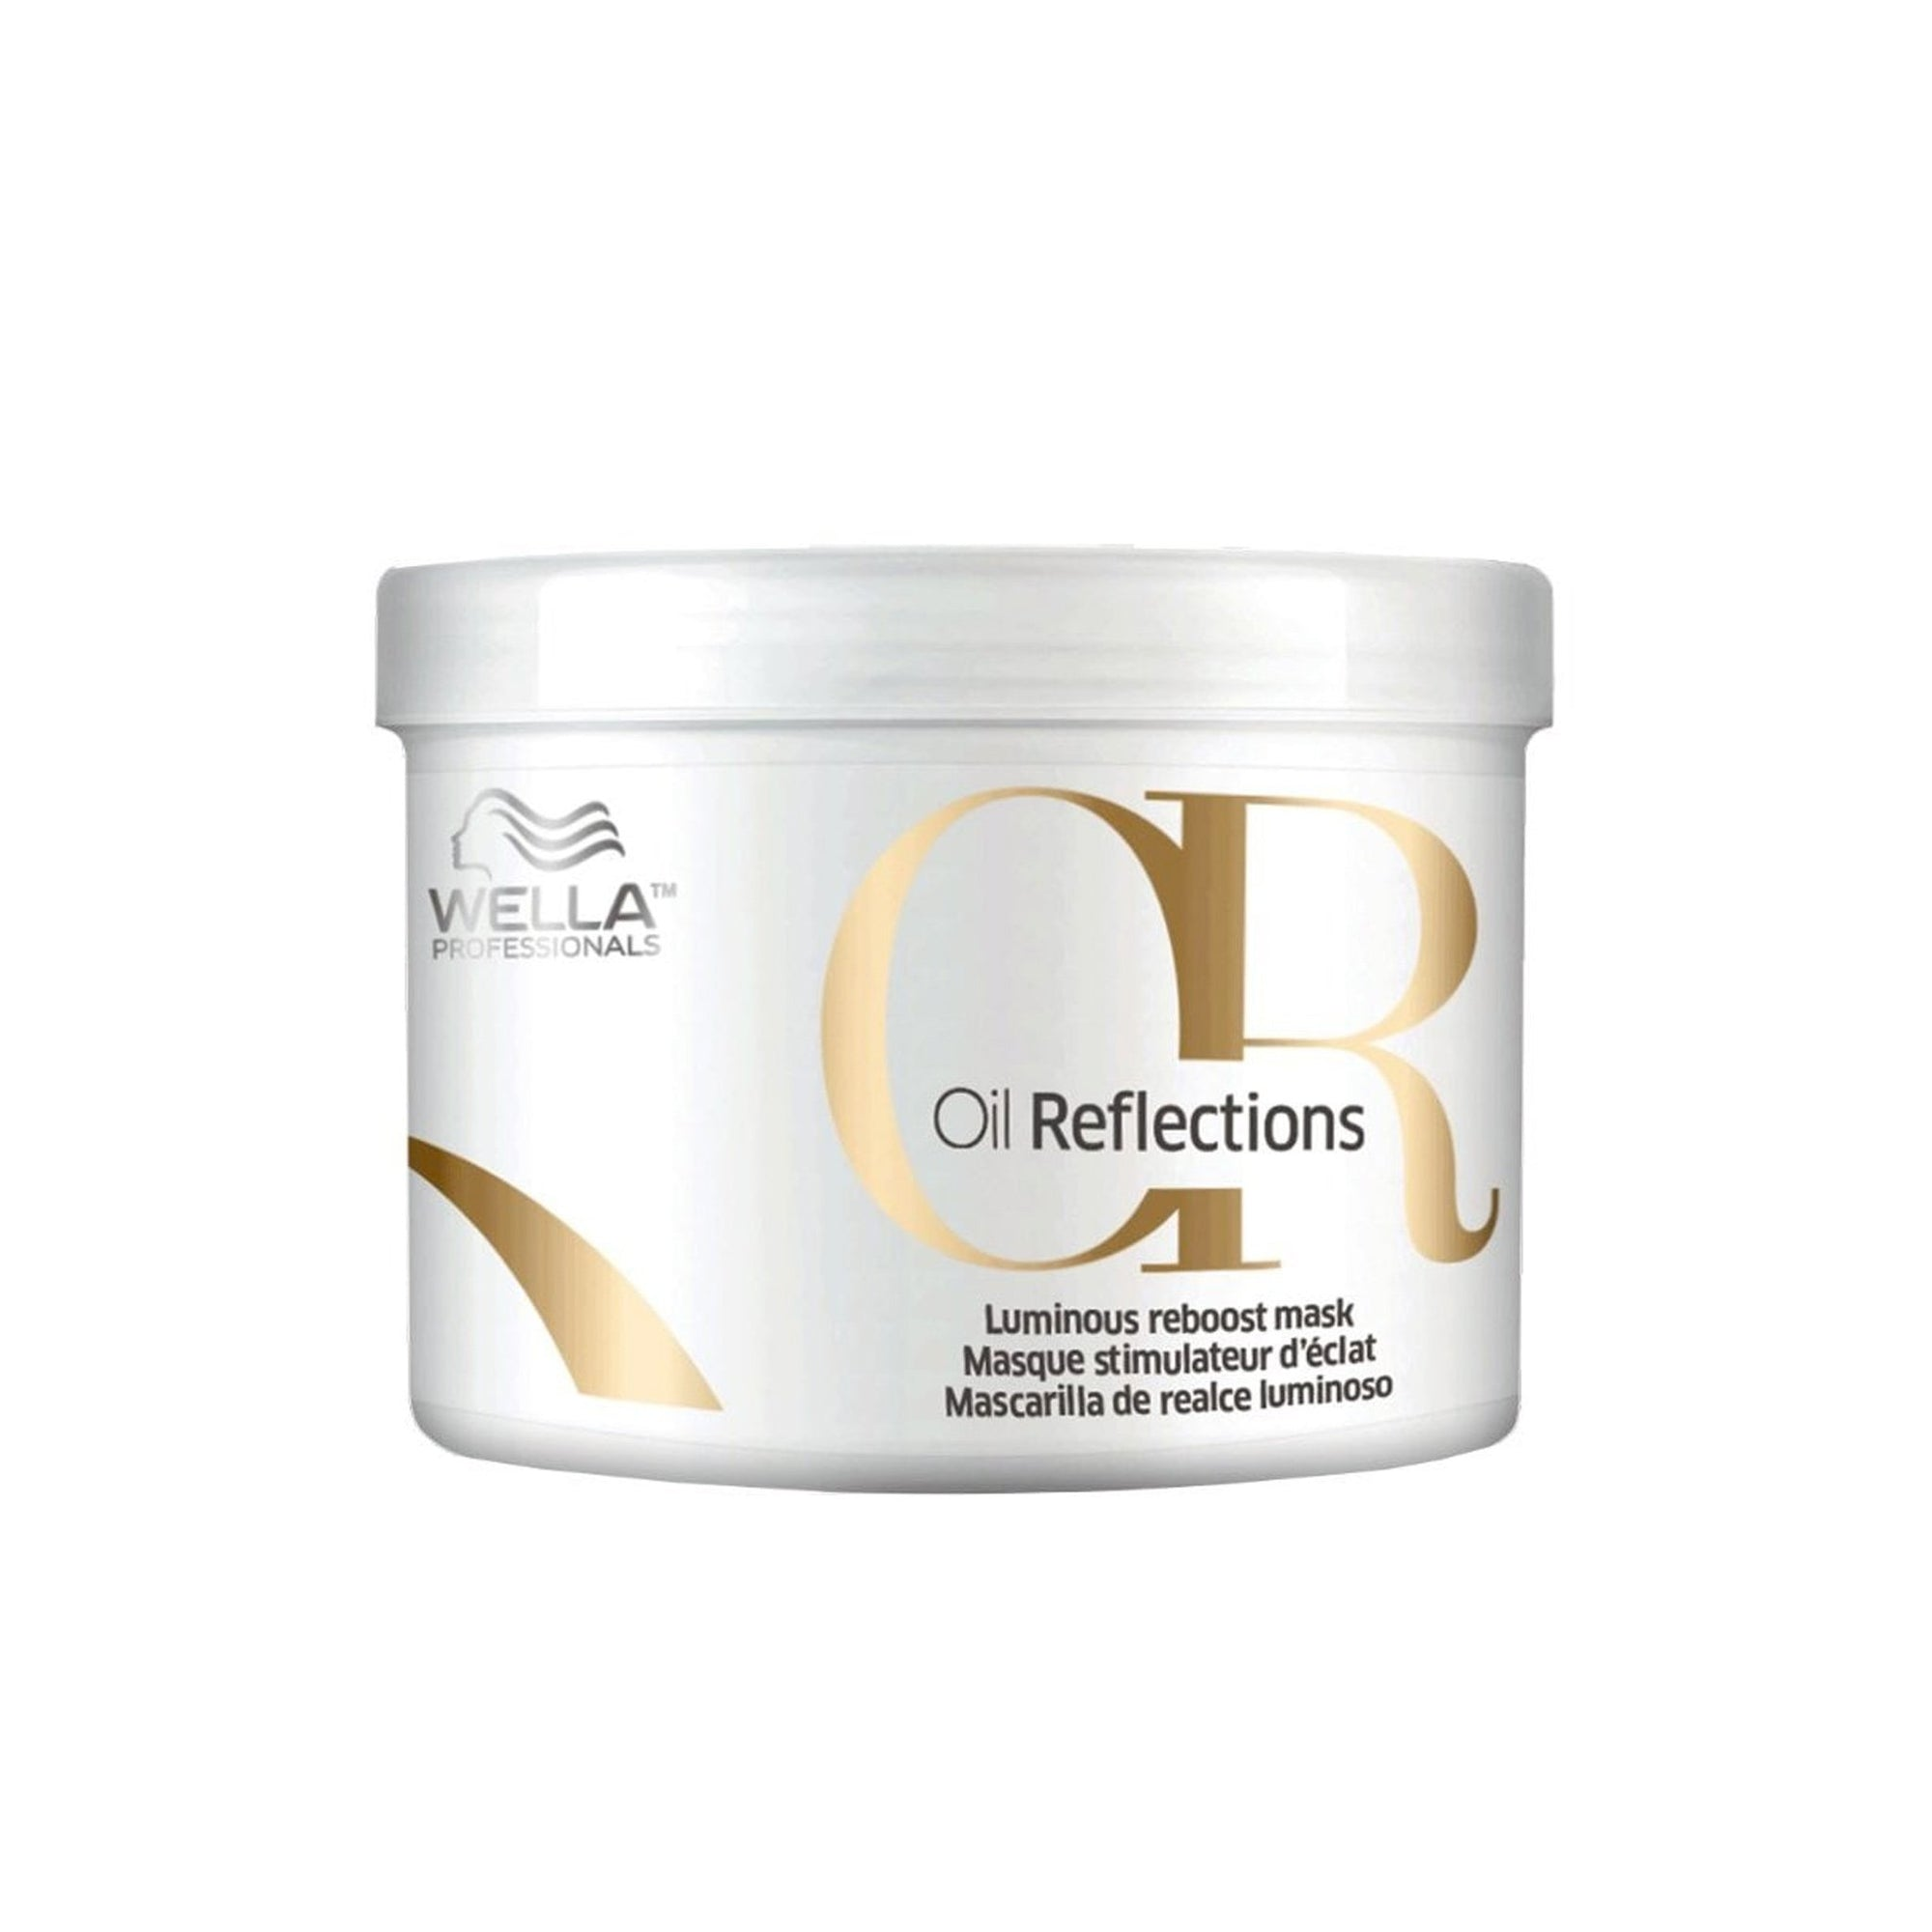 Wella Professionals Luminous Reboost Mask 500ml